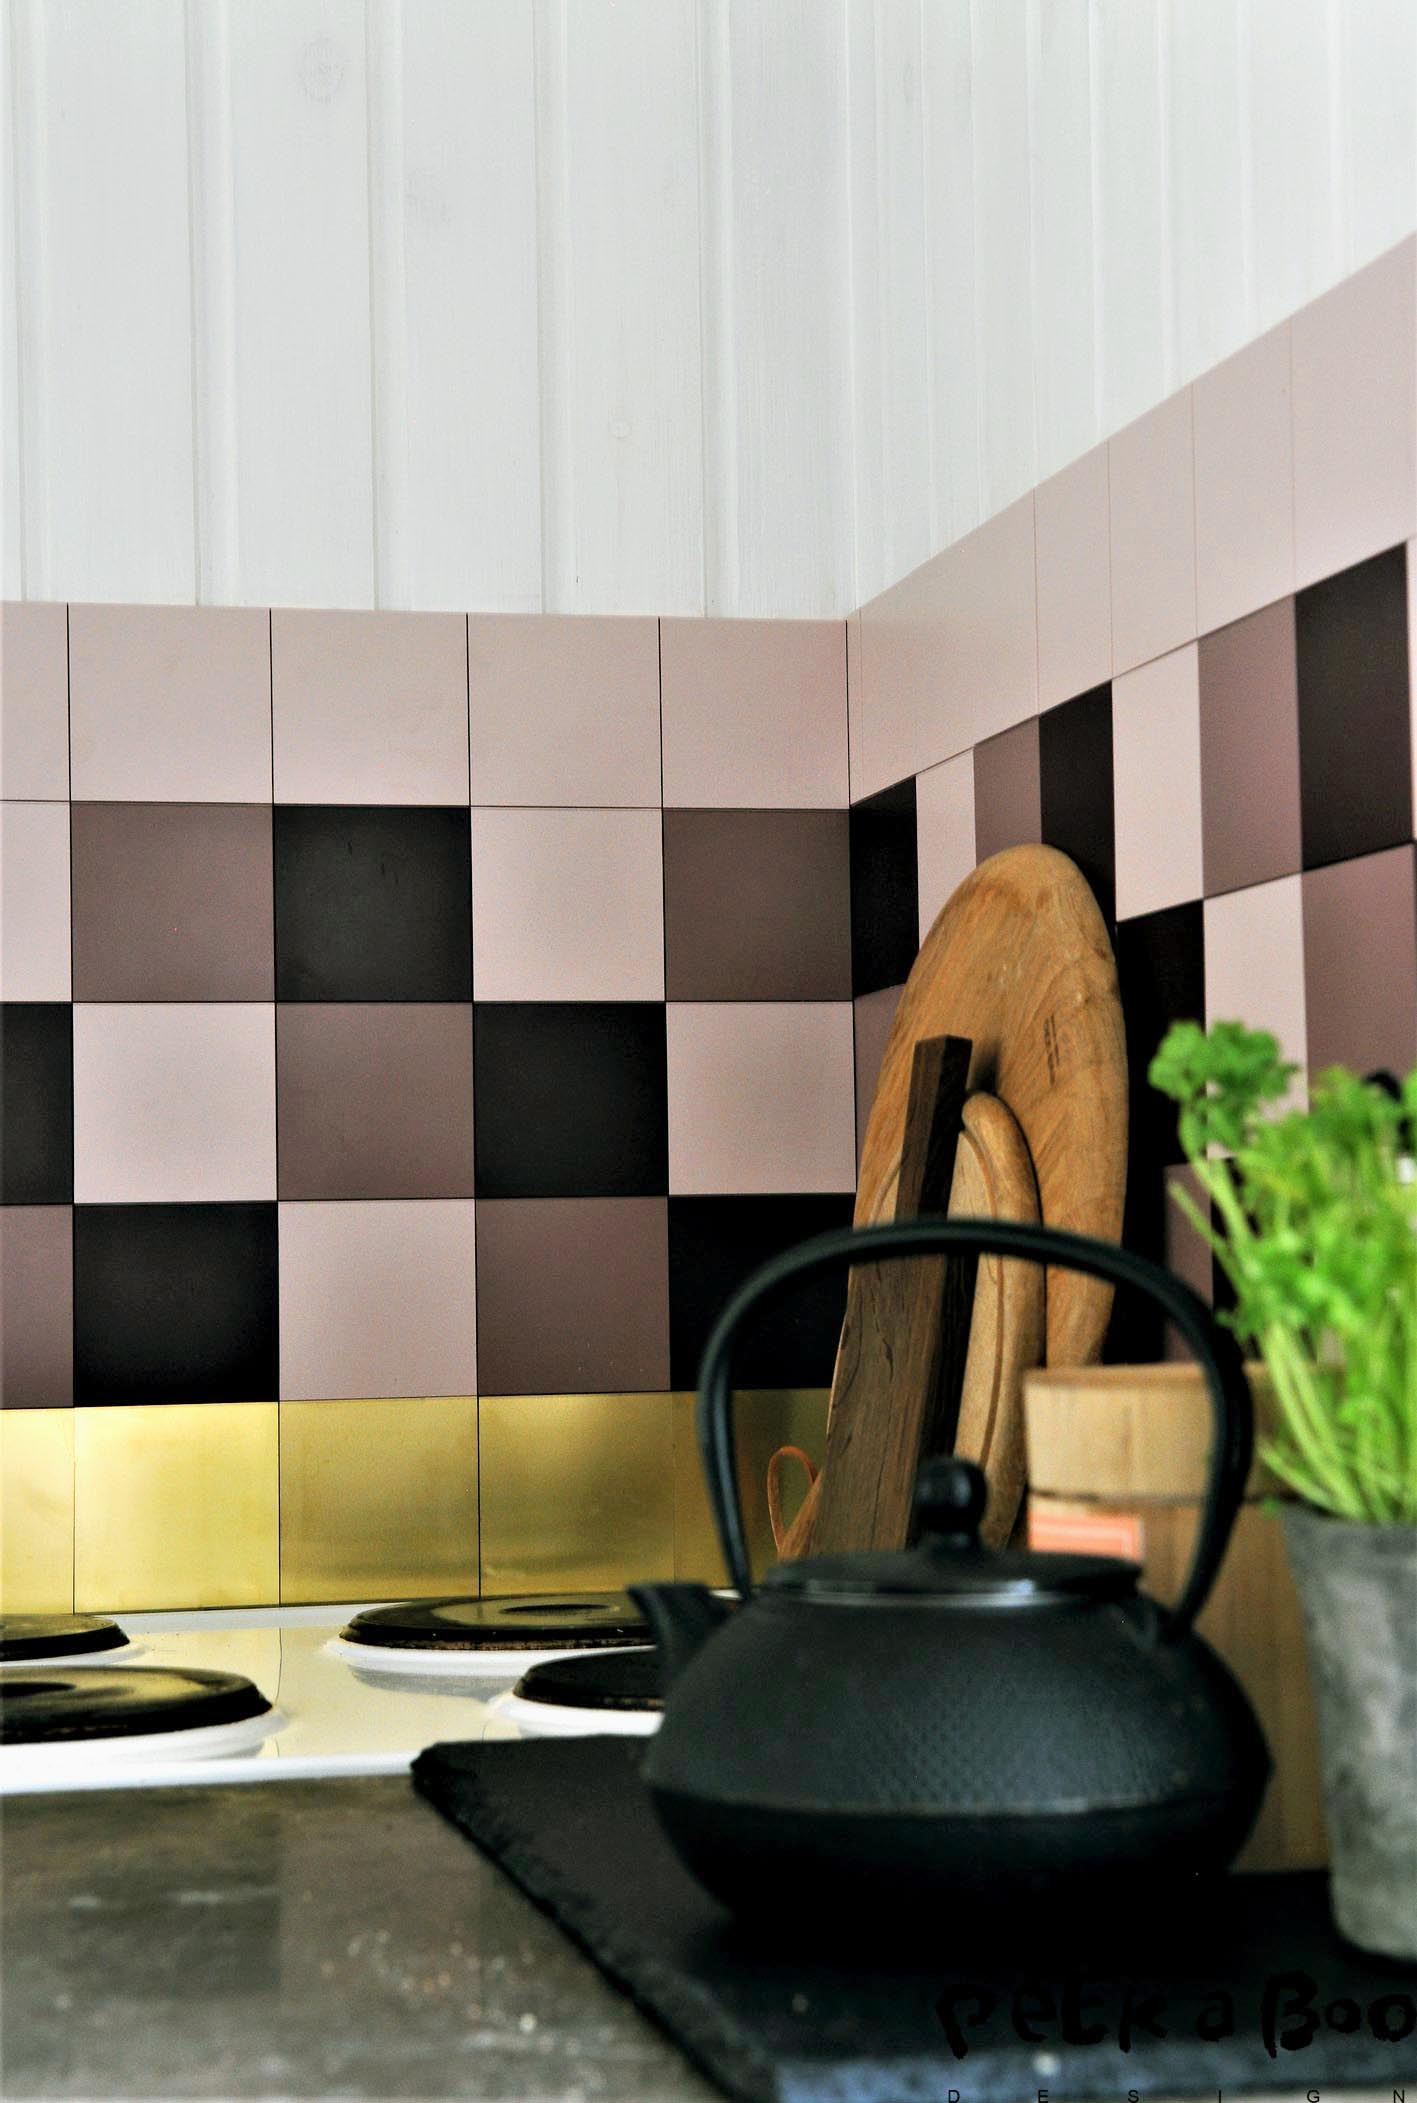 The smoohies look in the kitchen with clickc' tile in the feminine version.